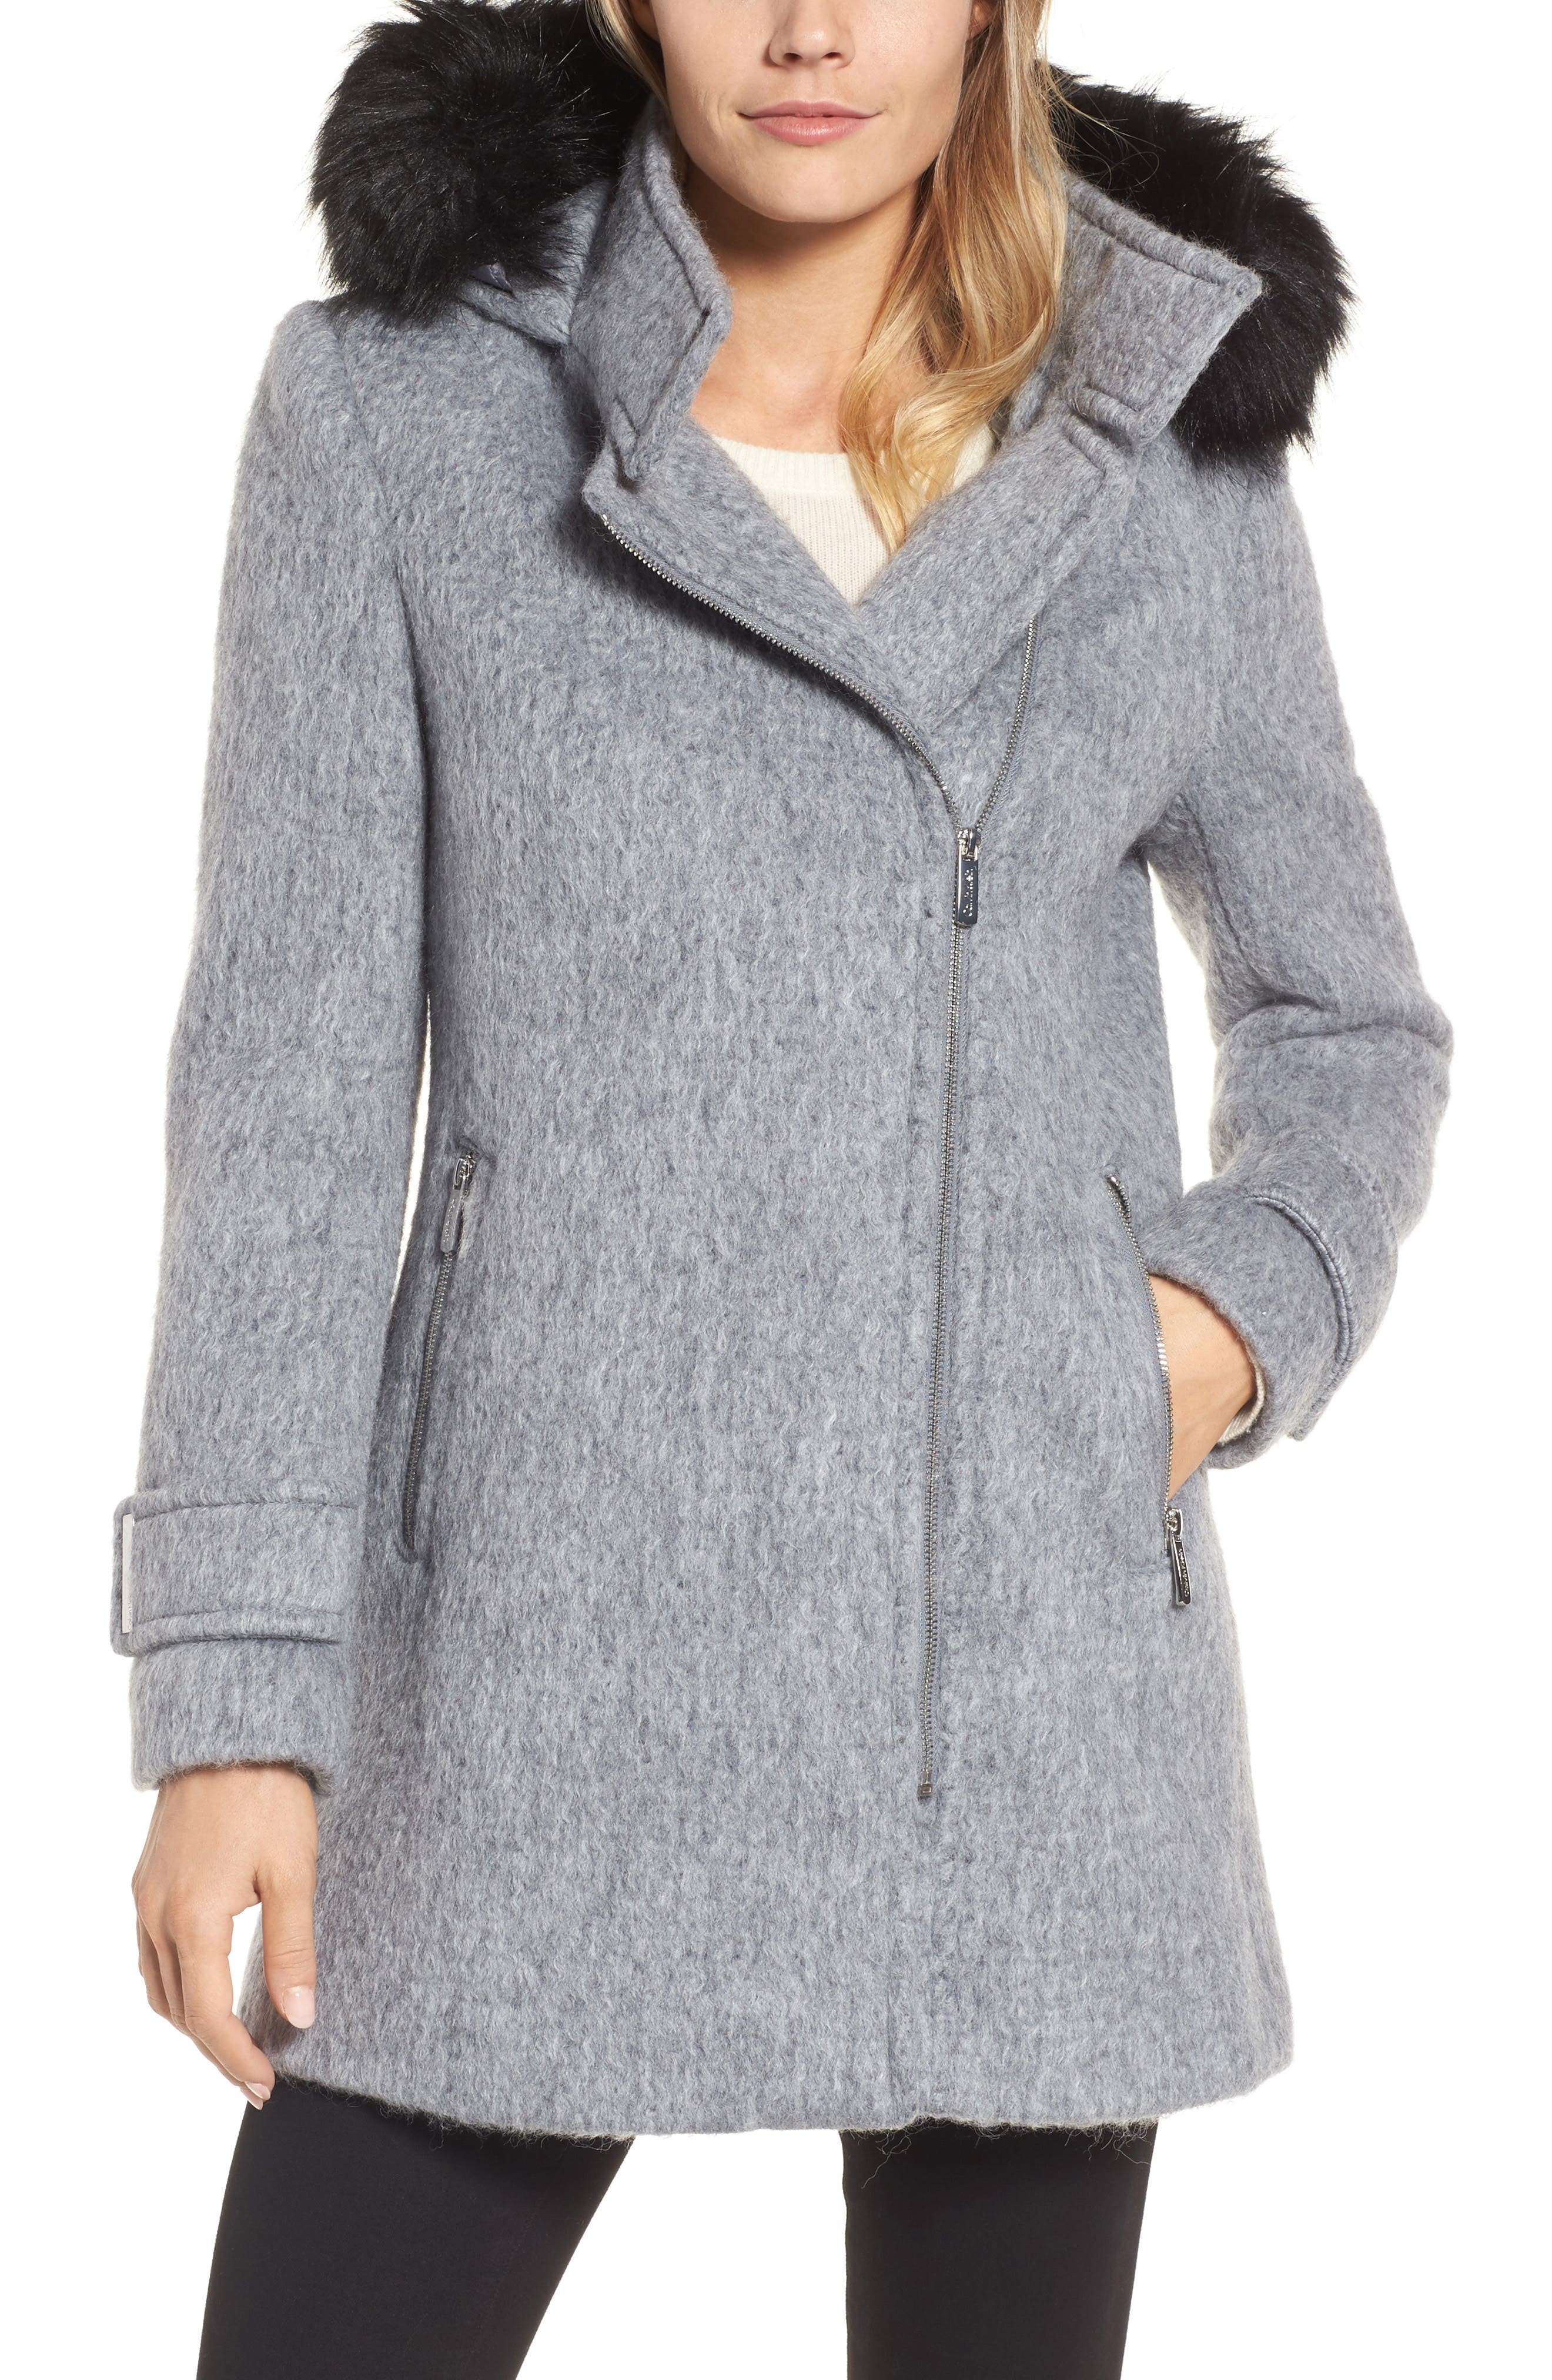 Calvin Klein Hooded Wool Blend Jacket with Faux Fur Trim